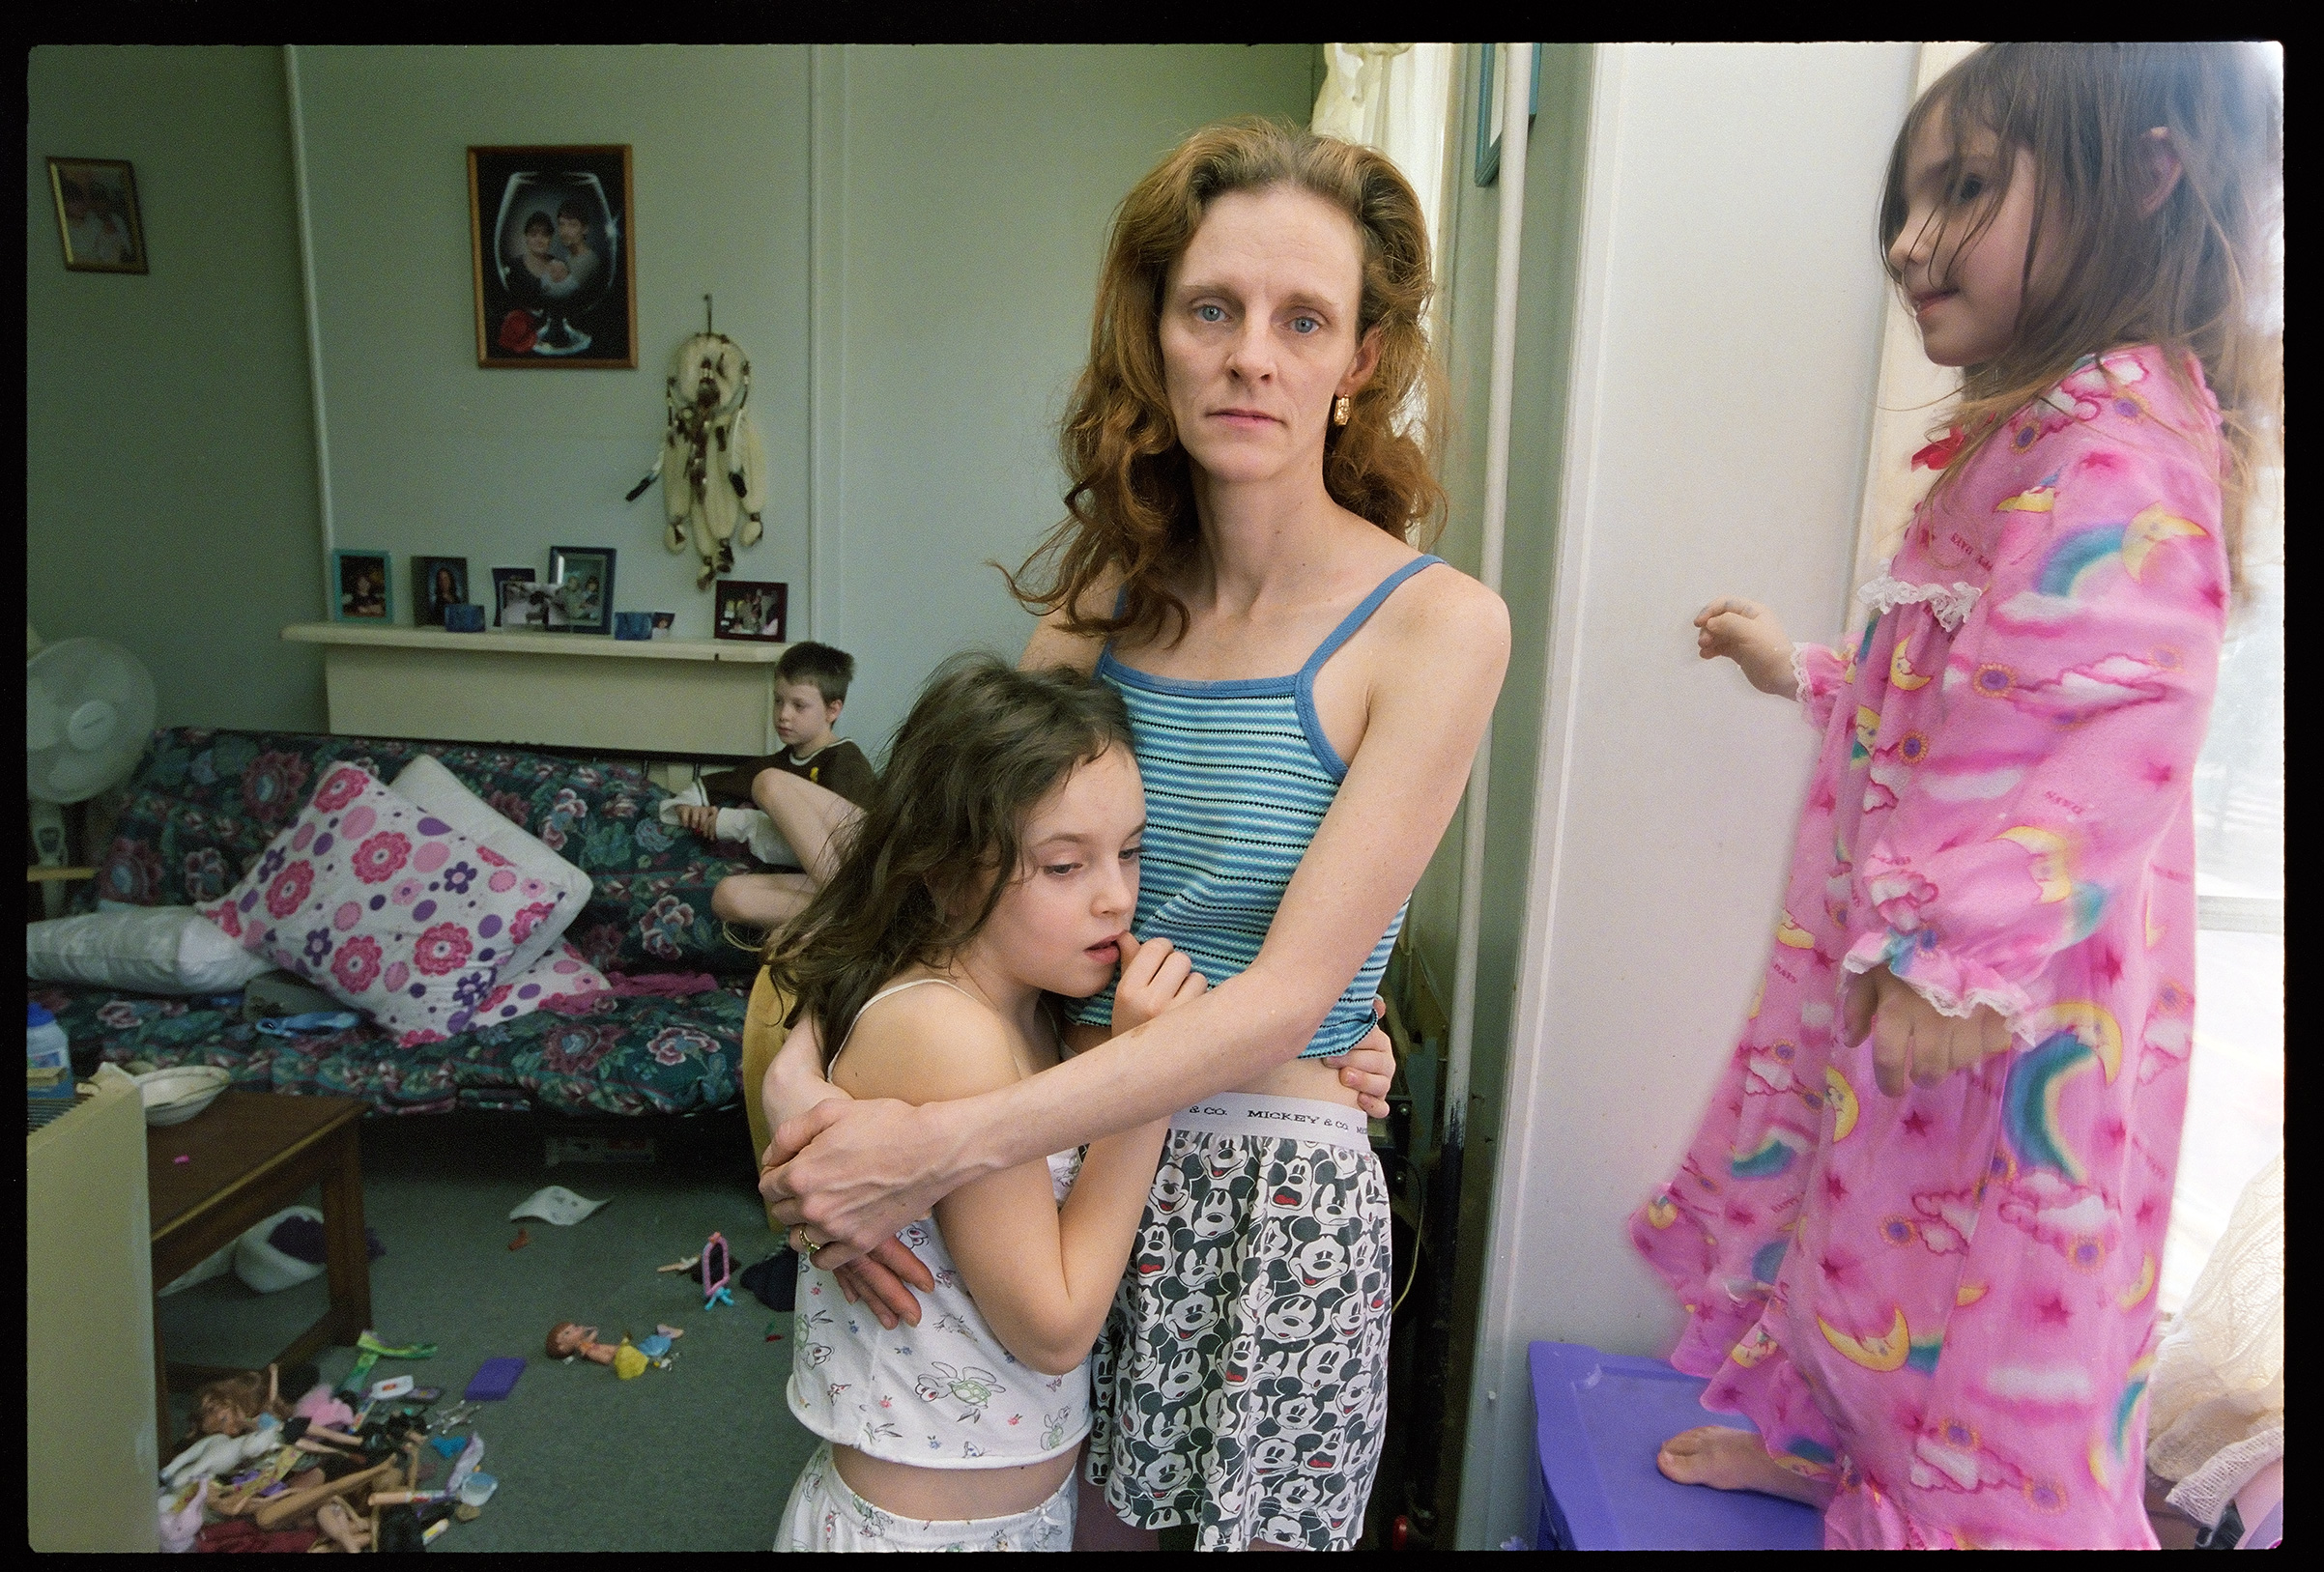 Lori Smith and her son, Darien and her daughters Megan and Katie all moved into an apartment in Debs house after they were evicted in 2006,  says Kenneally.